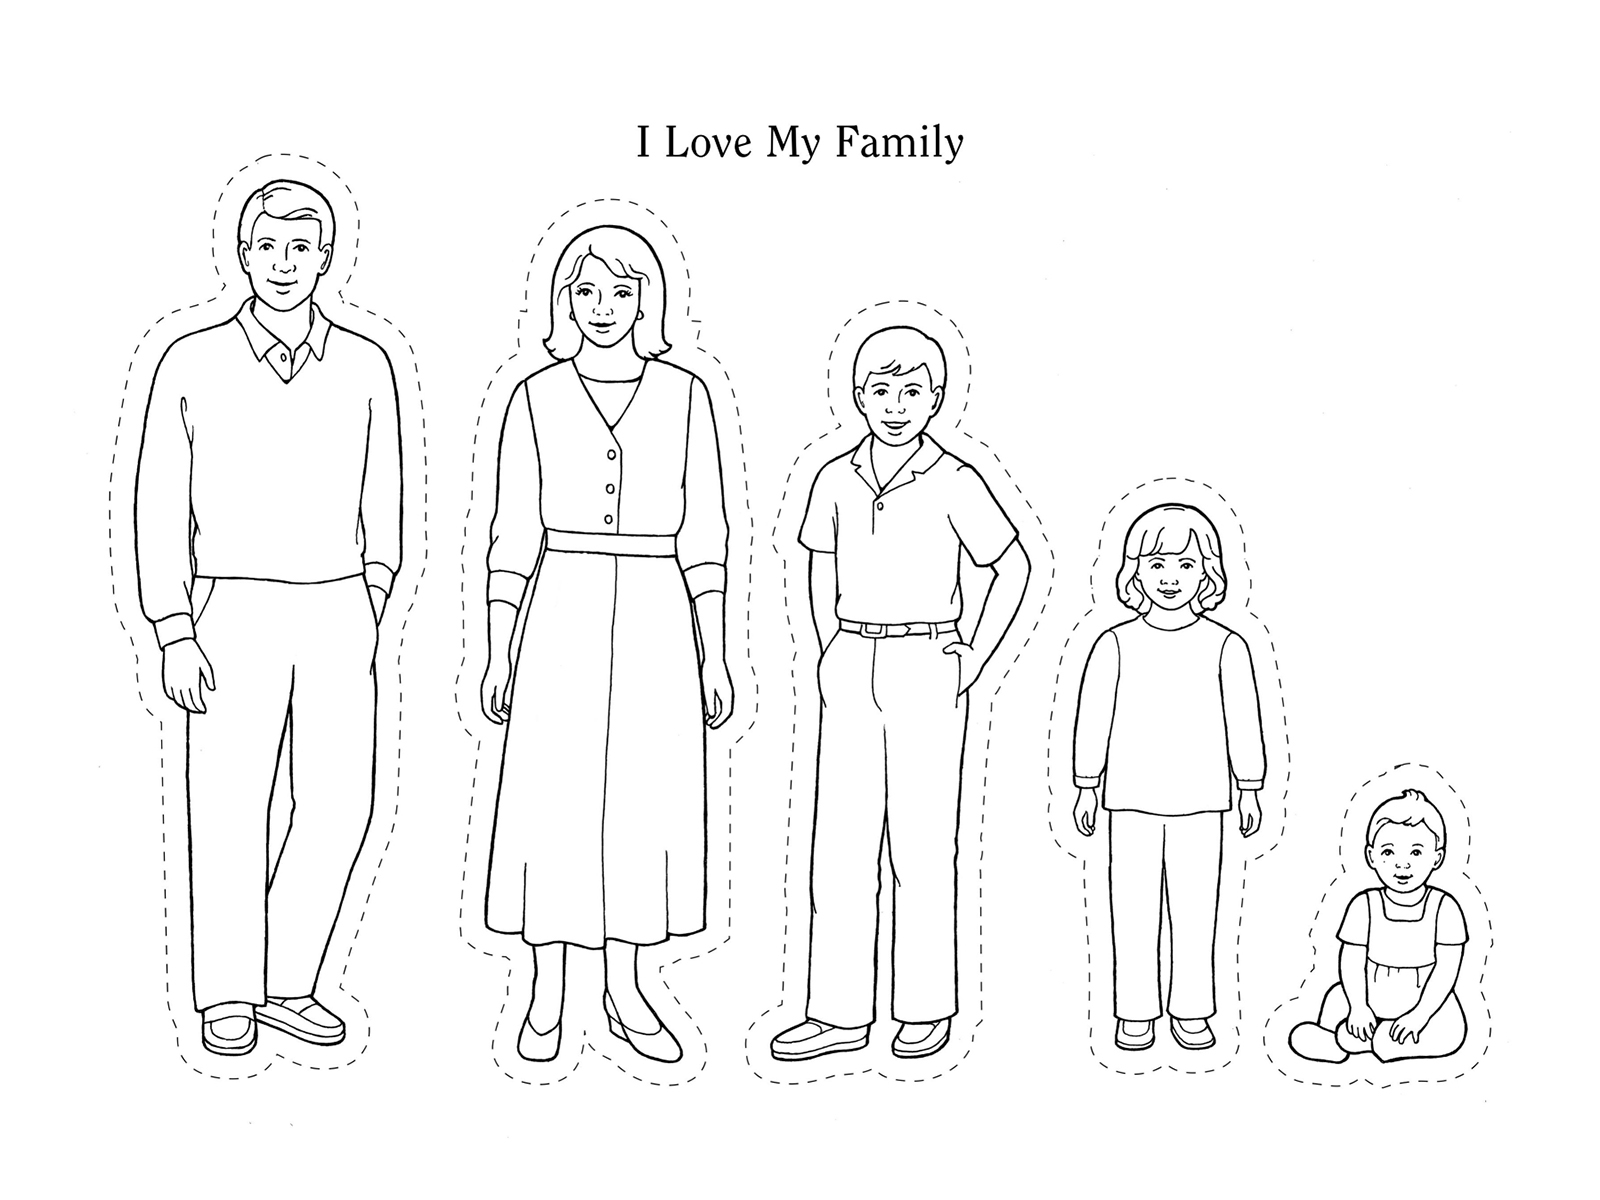 Nursery Manual Page 51 I Love My Family